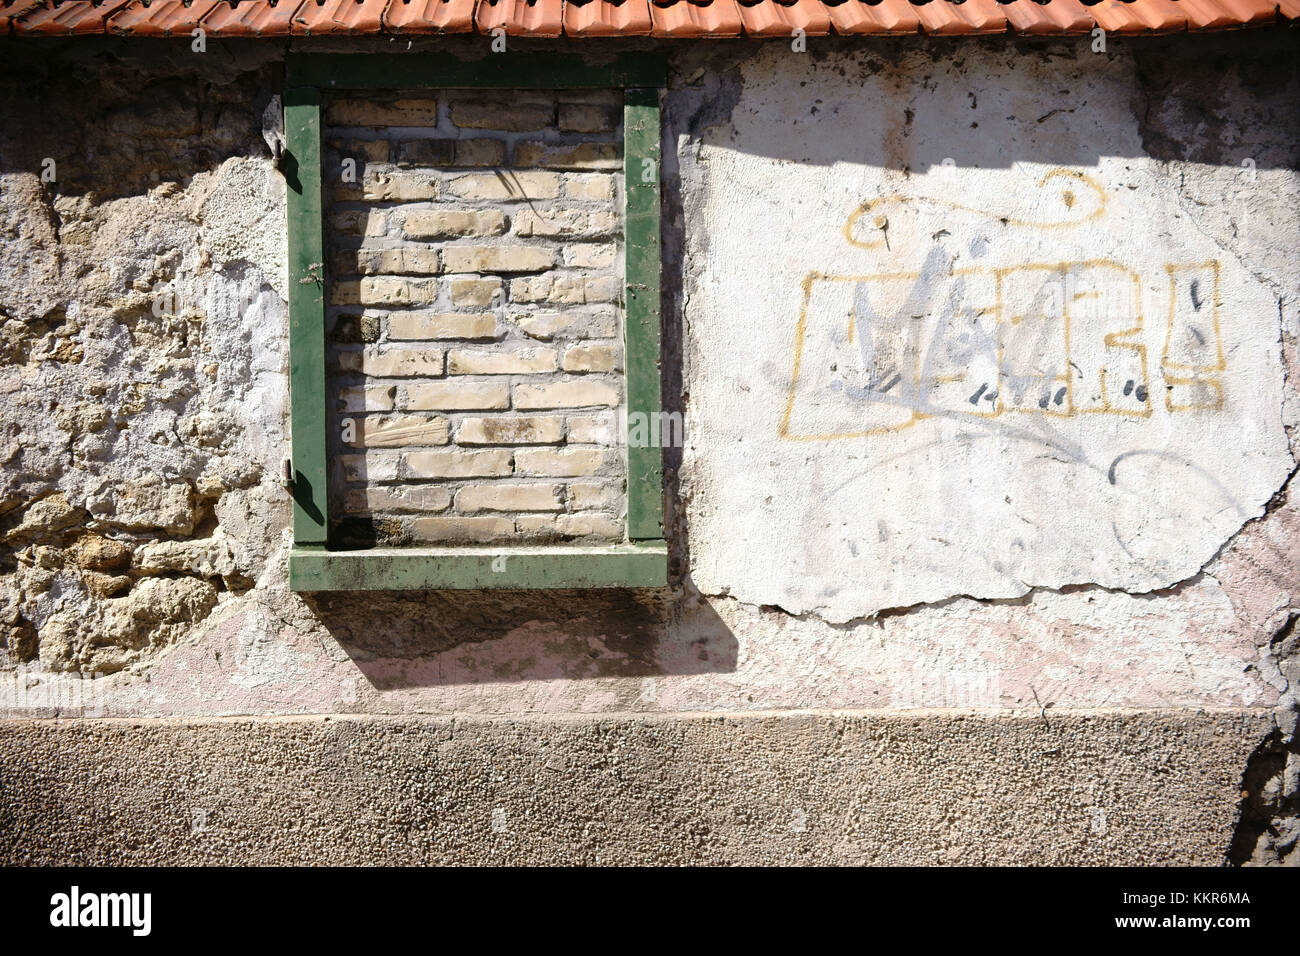 A rustic wall staggered and broken stones with roofing tiles and a bricked up window frame. - Stock Image